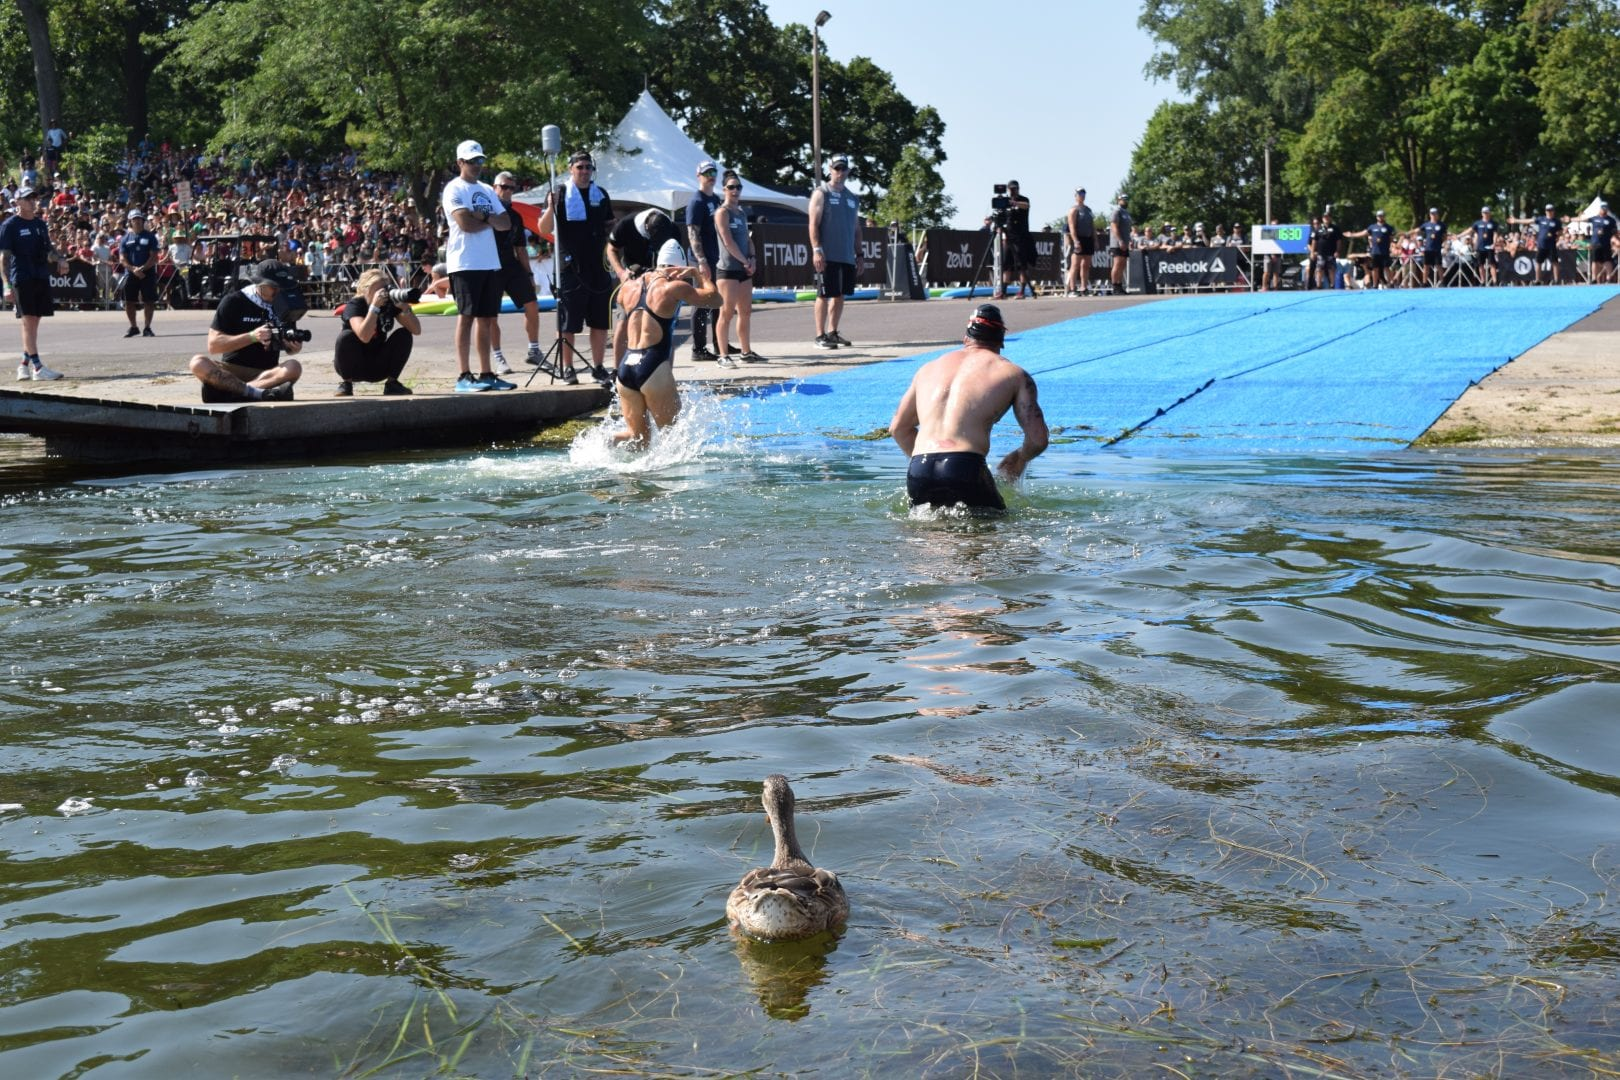 Tia-Clair Toomey is the first out of the water in the Swim Paddle event at the 2019 CrossFit Games